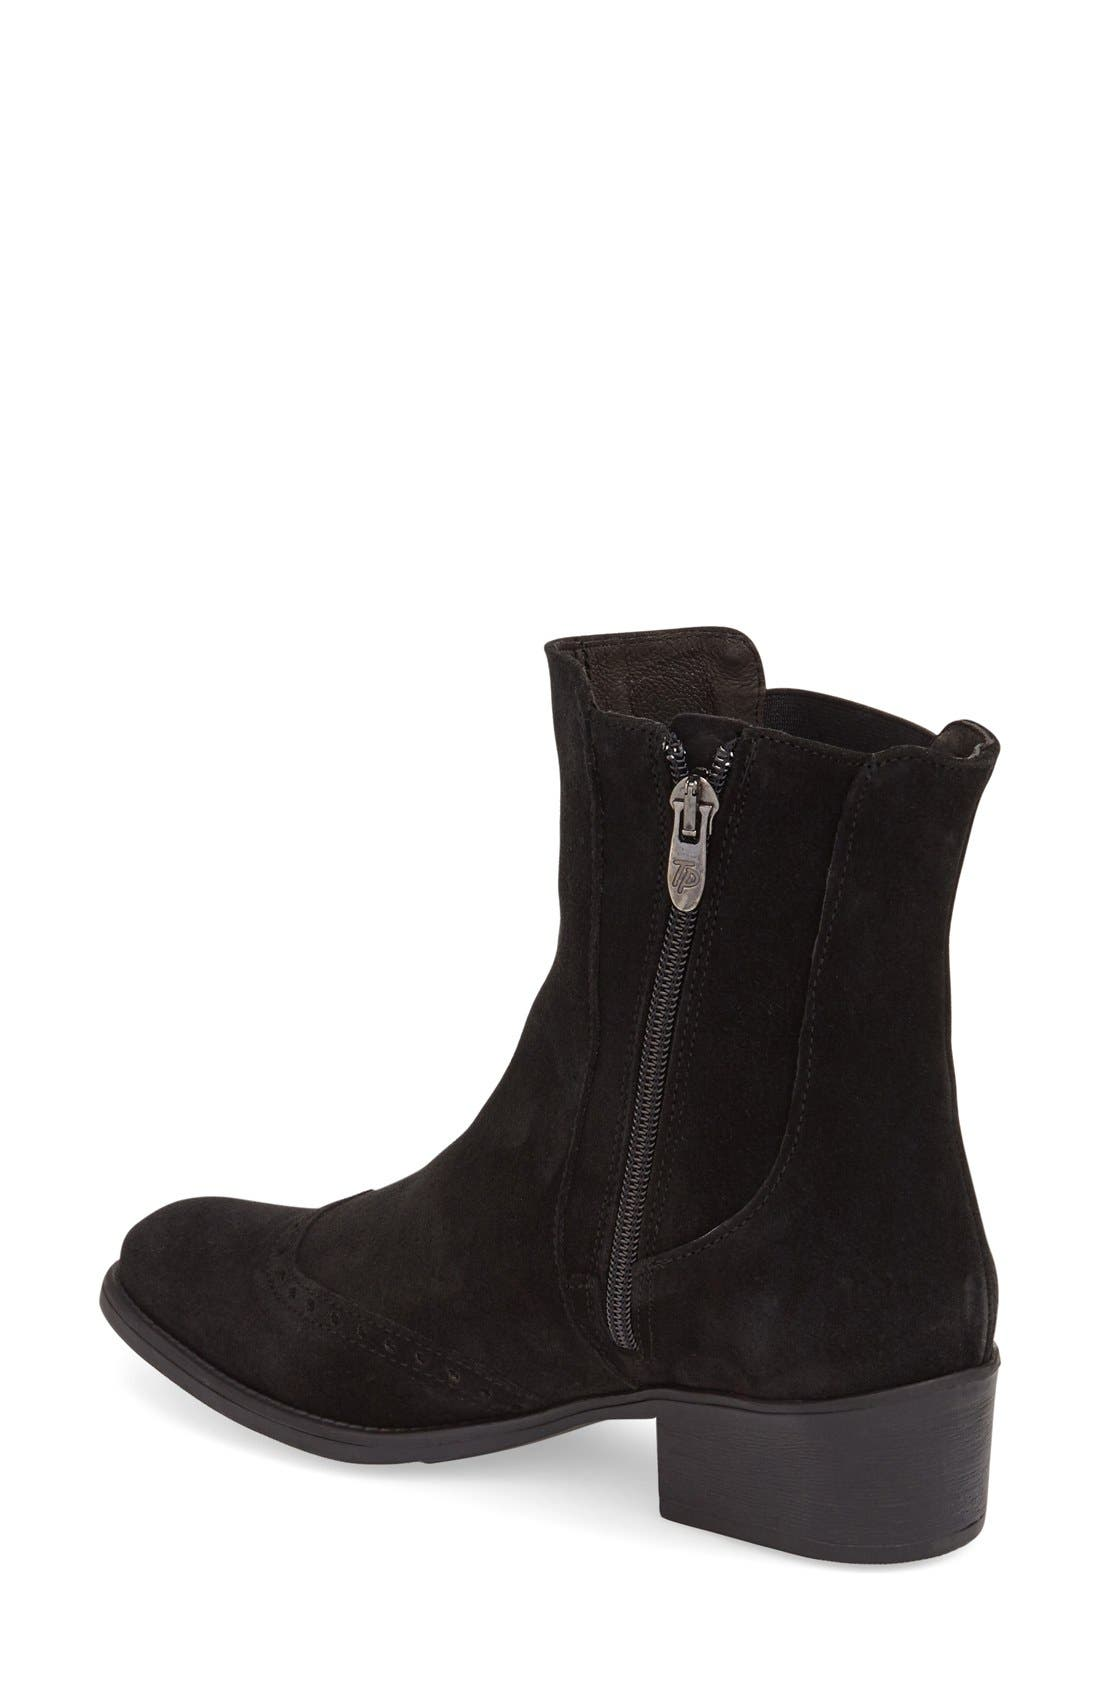 Alternate Image 2  - Toni Pons 'Trieste' Chelsea Boot (Women)